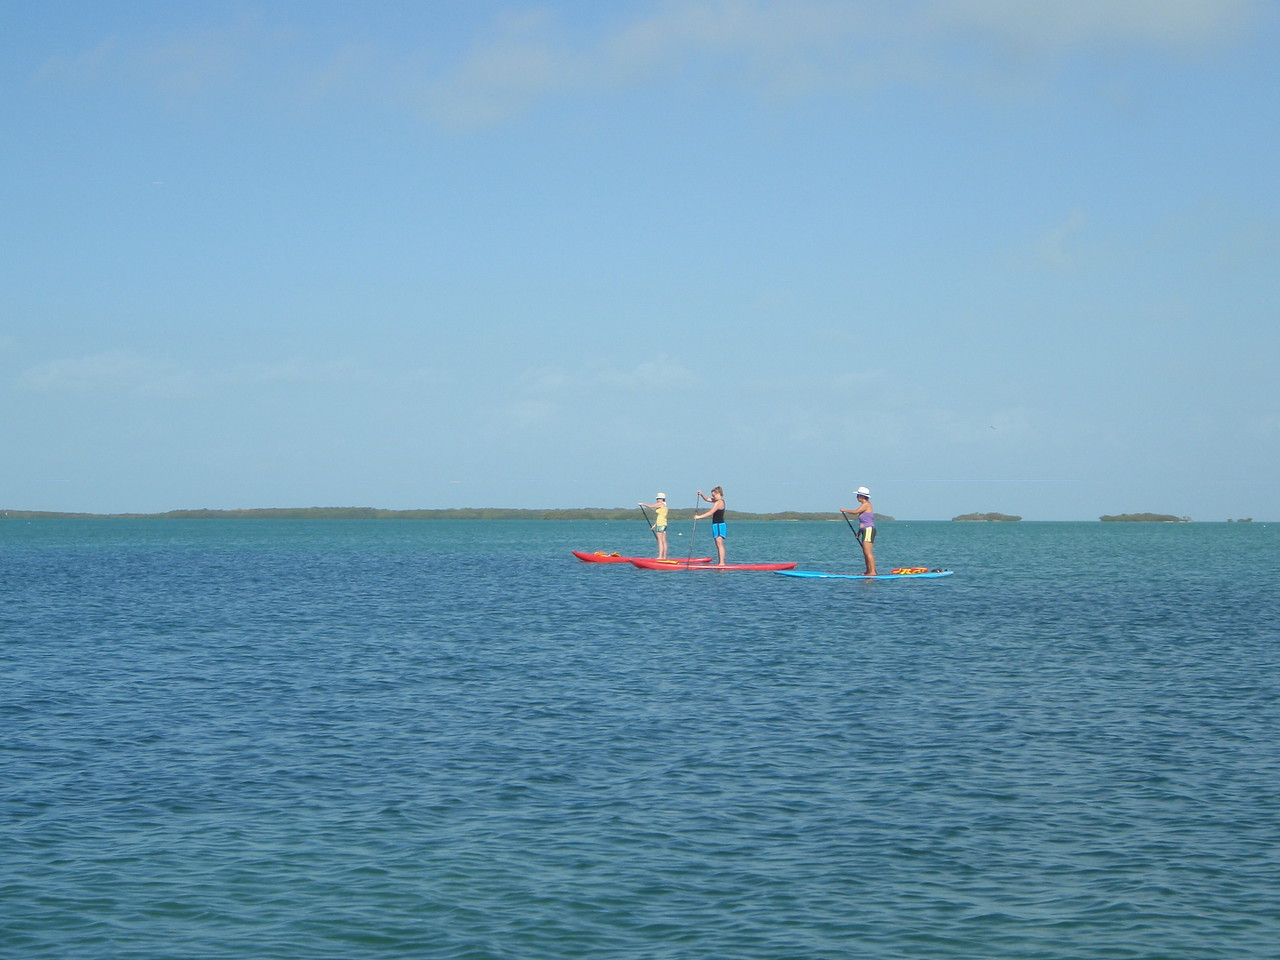 Heading back out to the bay we passed these paddle boarders